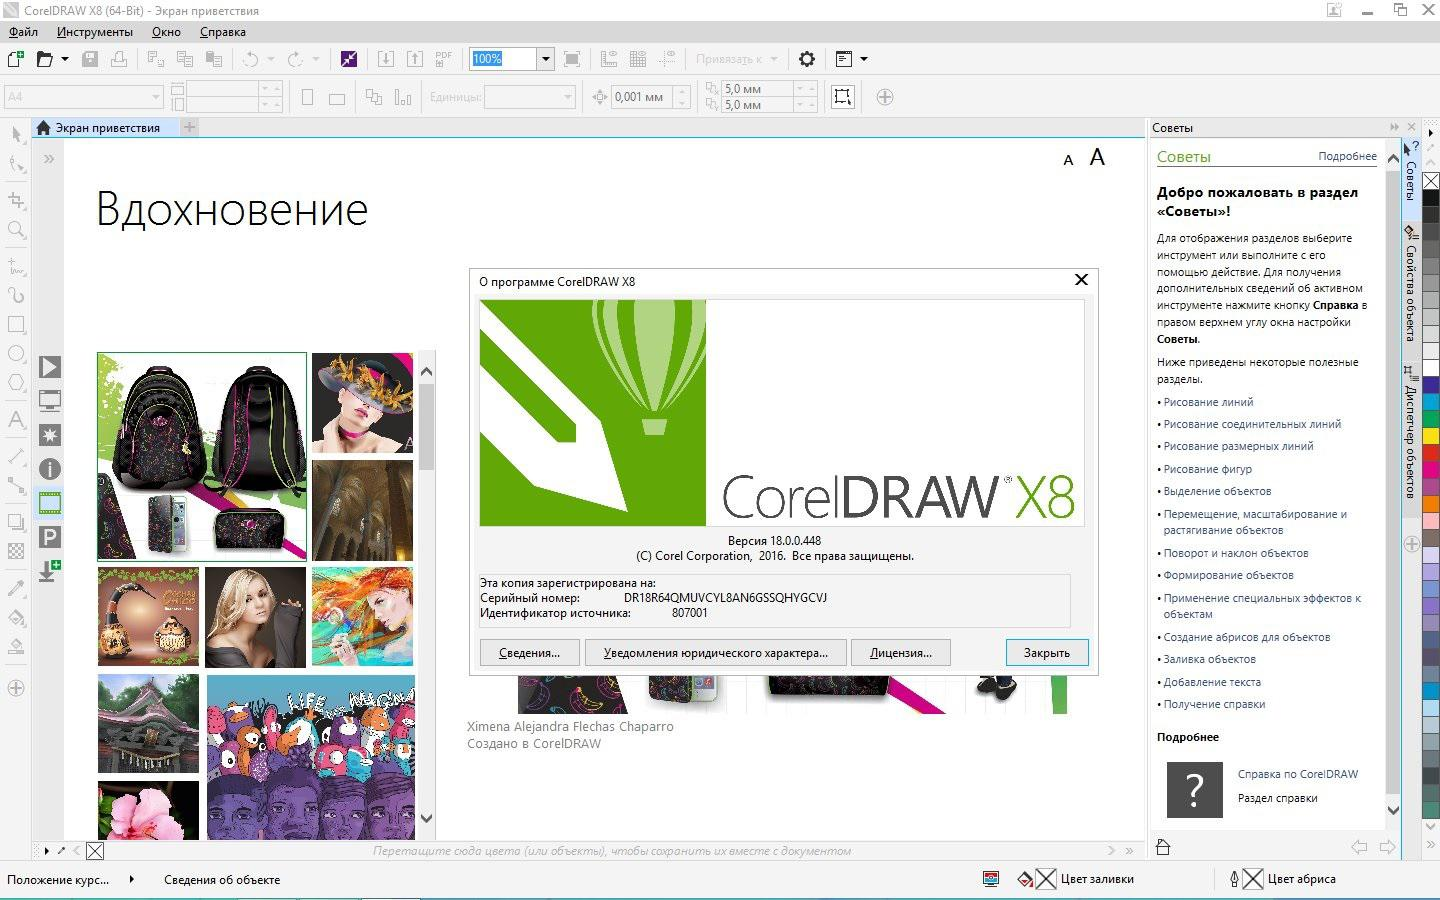 coreldraw x8 the official guide pdf